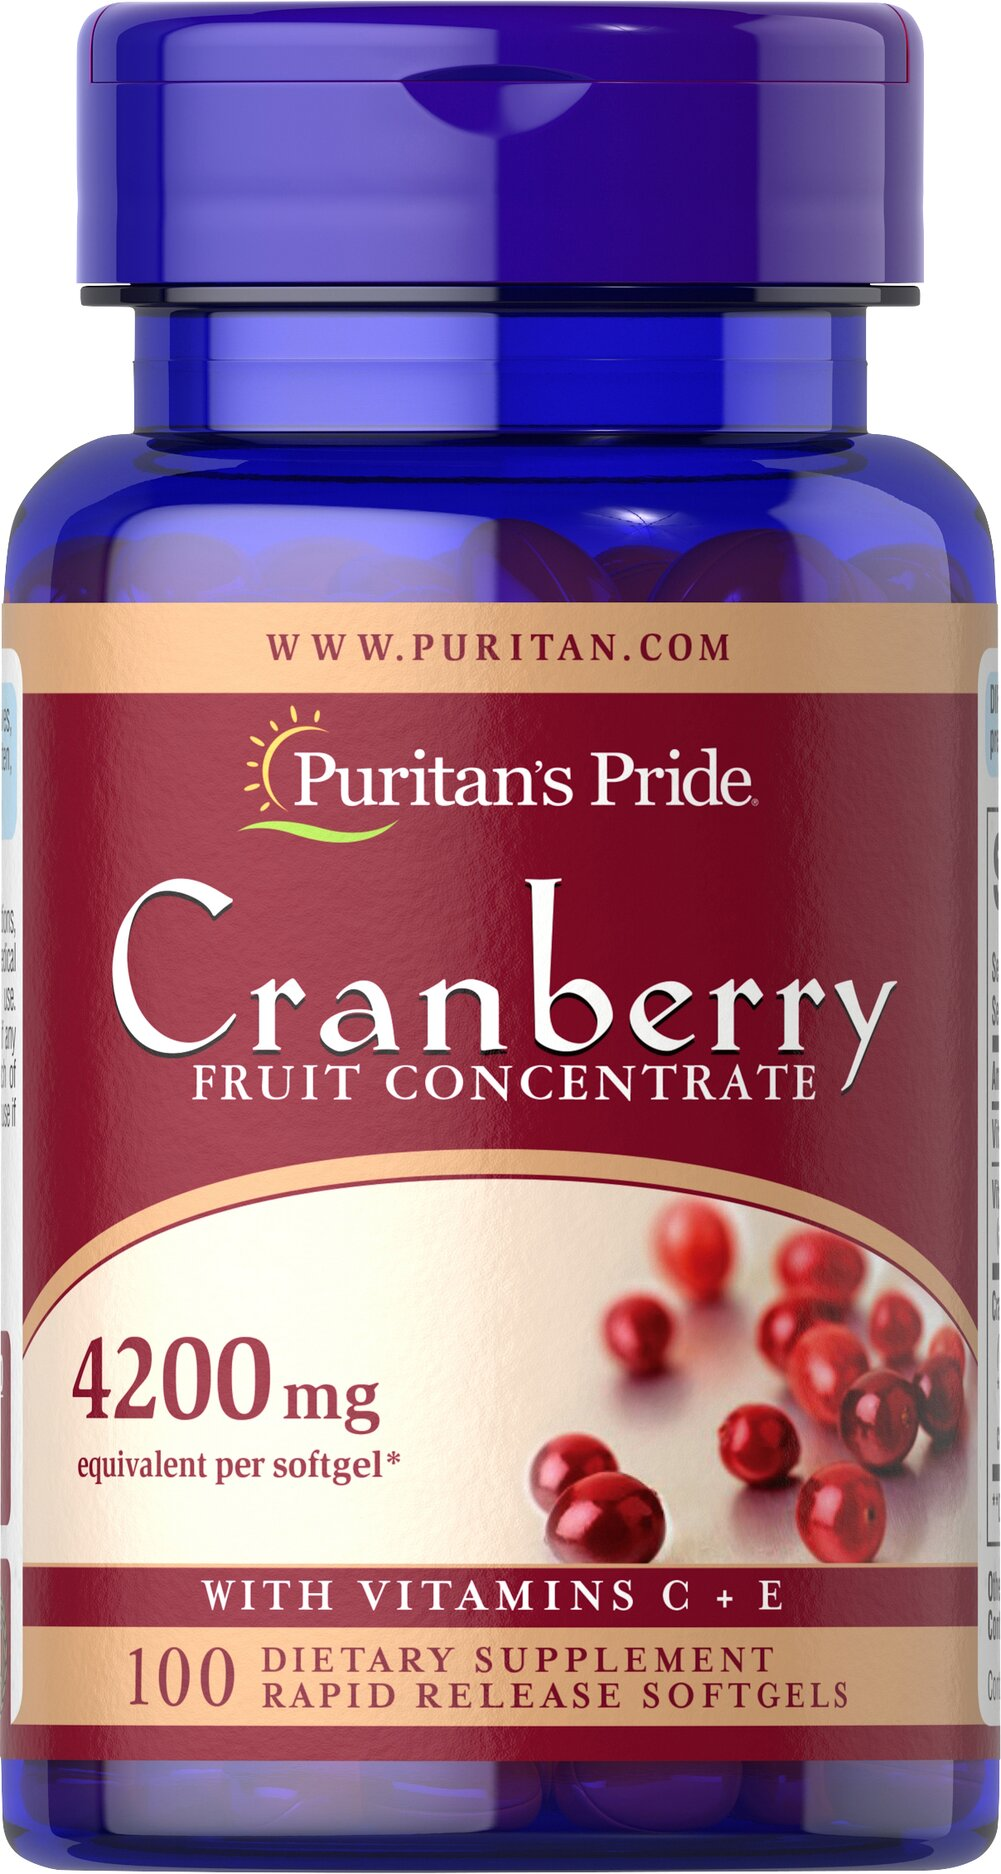 Cranberry Fruit Concentrate with C & E 4200 mg <p>This product has the benefits of concentrated cranberry without the unnecessary sugar and calories. Each of our concentrated (4200 mg) Cranberry softgels provide the equivalent of (8400 mg) of fresh cranberries plus (40 mg) of Vitamin C and 6 IU of Vitamin E.  Adults can take two softgels 3 times daily, after meals.</p> 100 Softgels 4200 mg $10.79